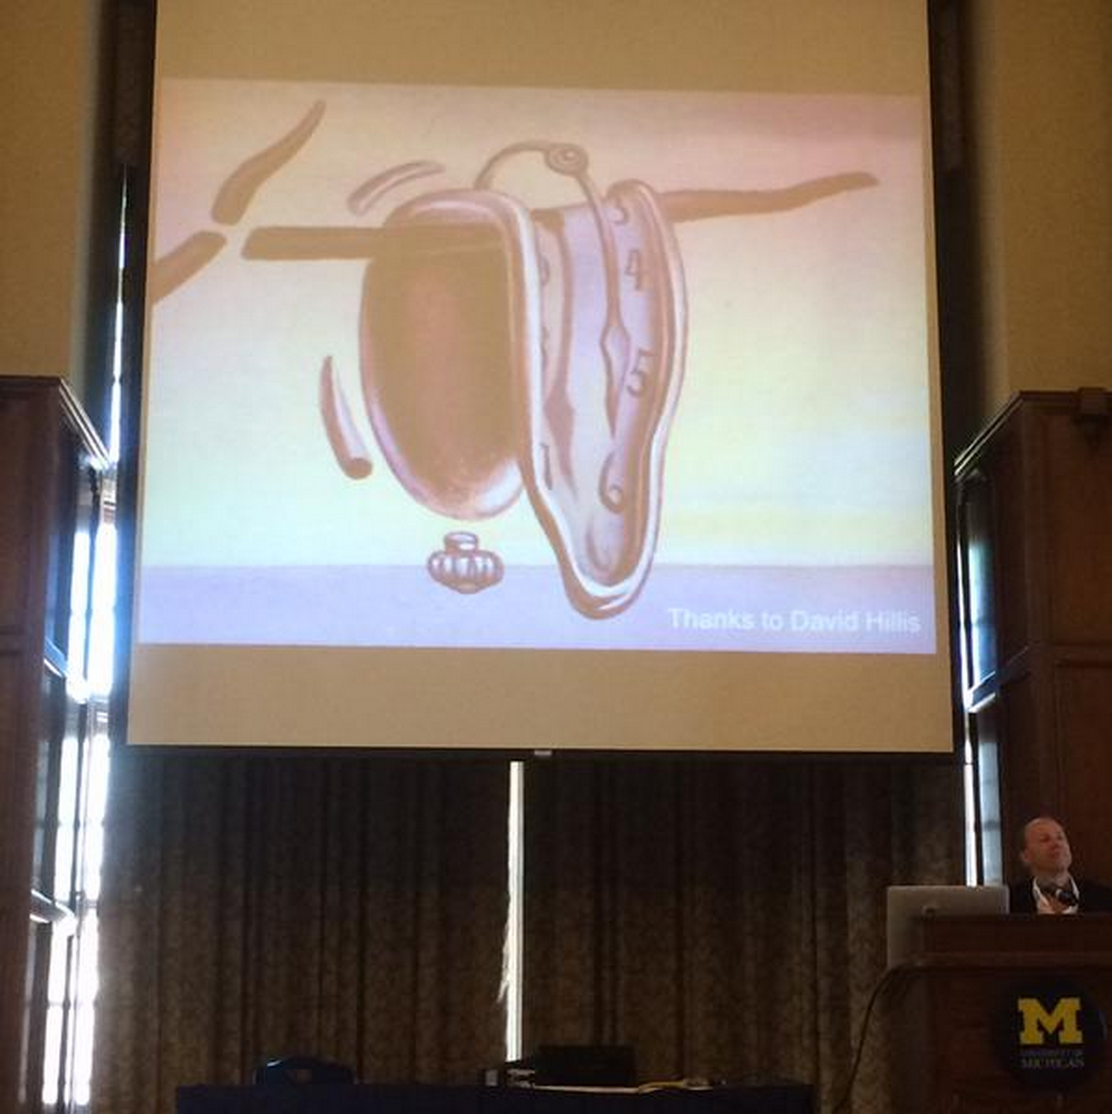 """Tweet from David Hillis: """"Molecular clocks can be useful but we need to take sources of error seriously (like Dali clock) #SSB2015"""""""